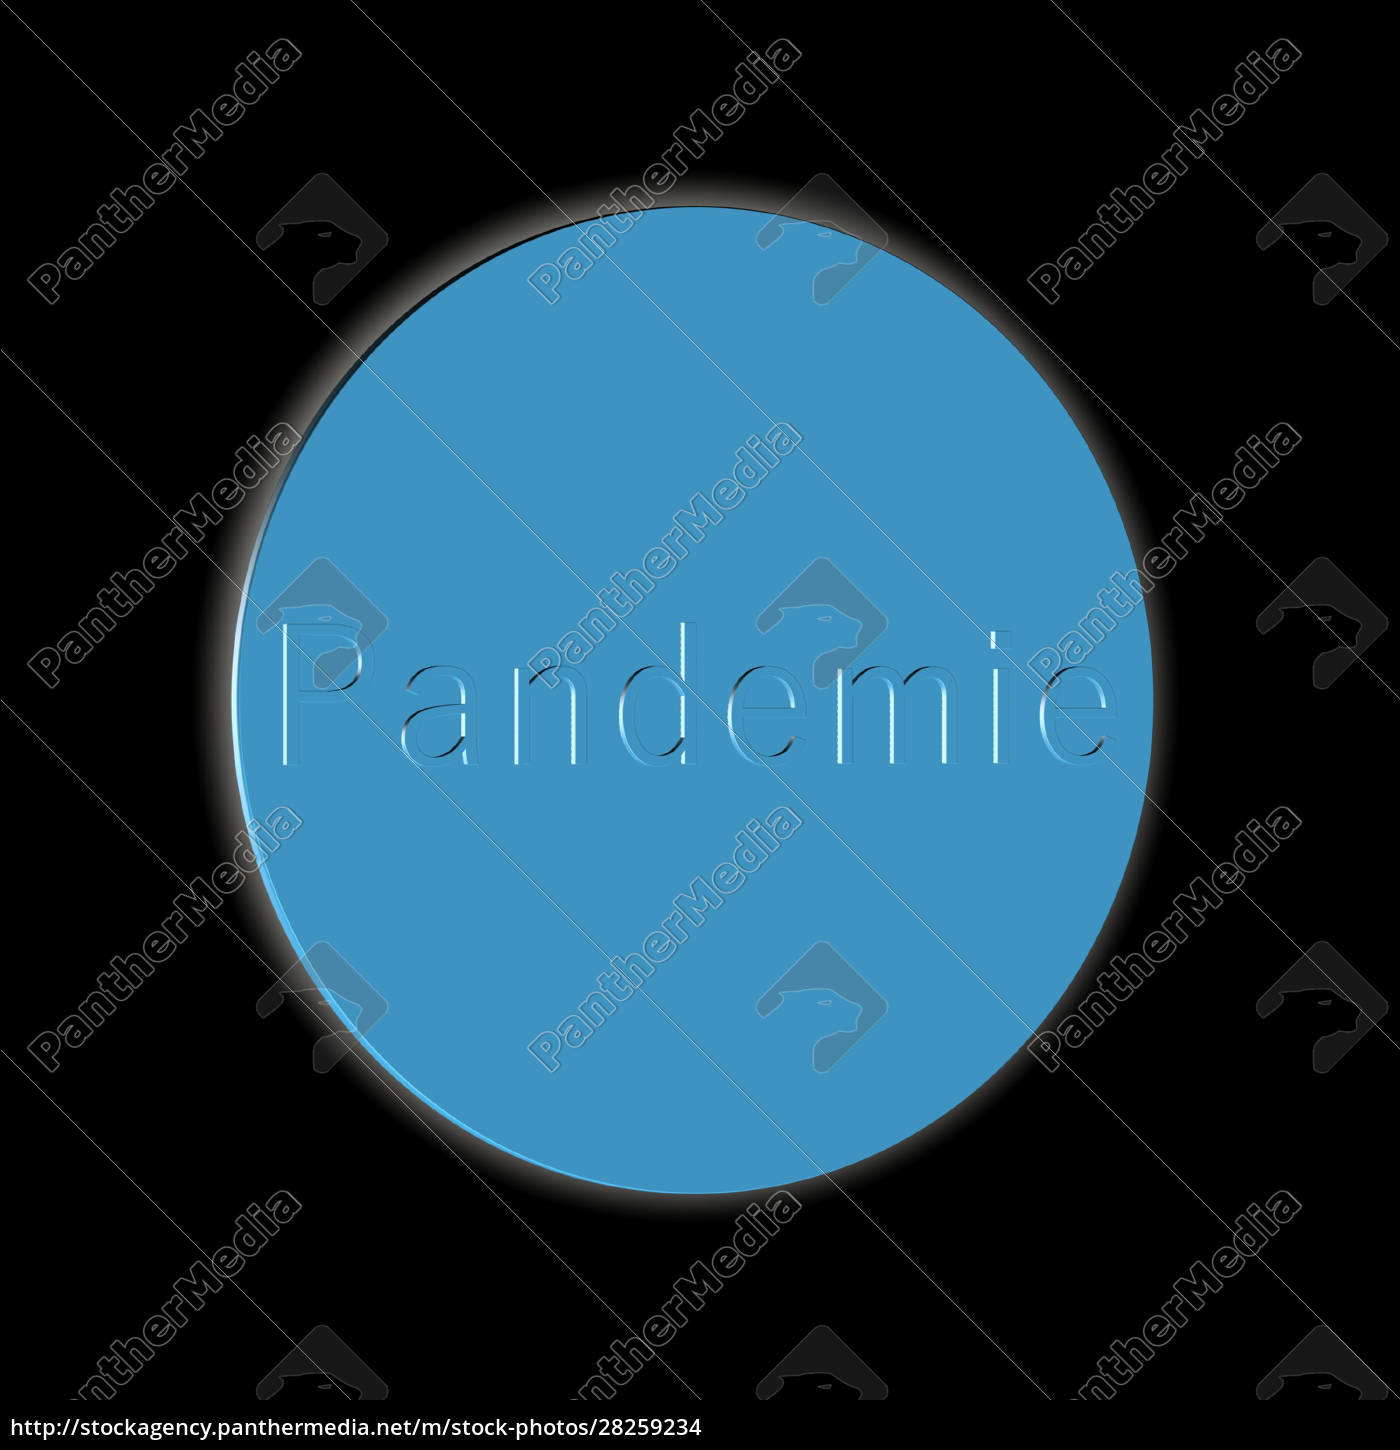 pandemic, -, word, or, text, as - 28259234